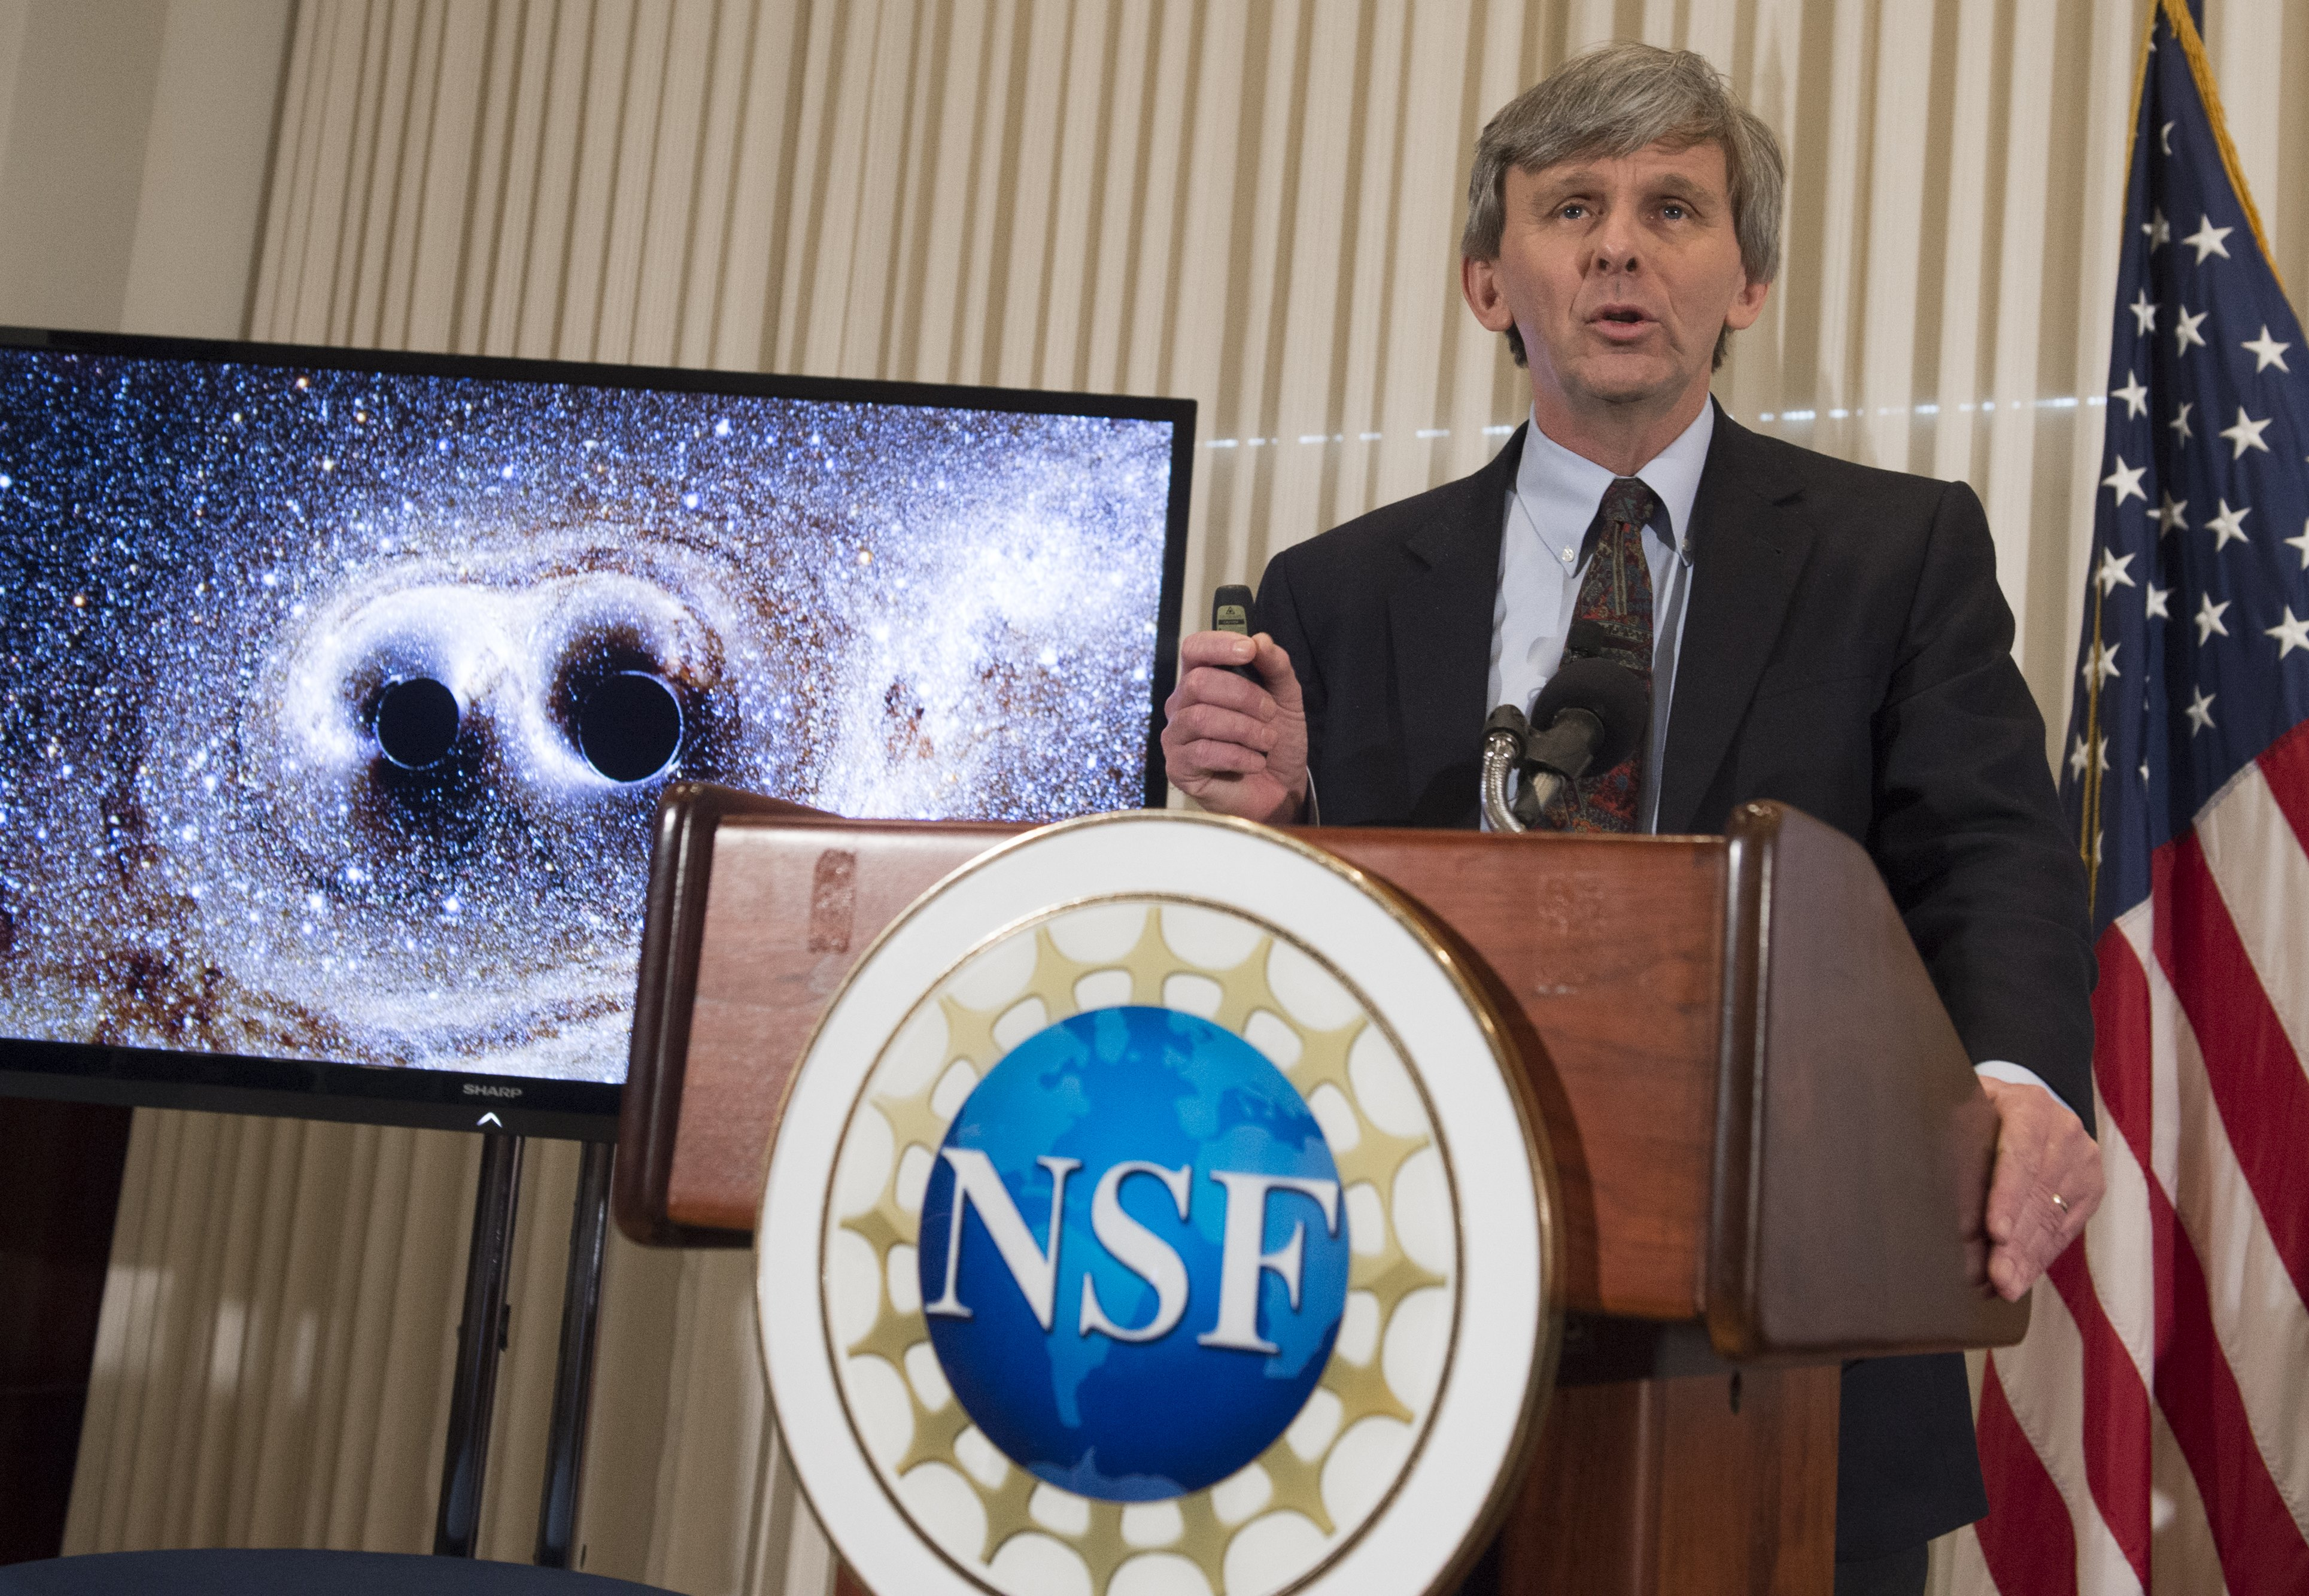 David Reitze, executive director of the LIGO Laboratory at Caltech, announces that scientists have observed ripples in the fabric of spacetime called gravitational waves for the first time, confirming a prediction of Albert Einstein's theory of relativity, during a press conference at the National Press Club in Washington, DC, February 11, 2016.                     The machines that gave scientists their first-ever glimpse at gravitational waves are the most advanced detectors ever built for sensing tiny vibrations in the universe.The two US-based underground detectors are known as the Laser Interferometer Gravitational-wave Observatory, or LIGO for short.